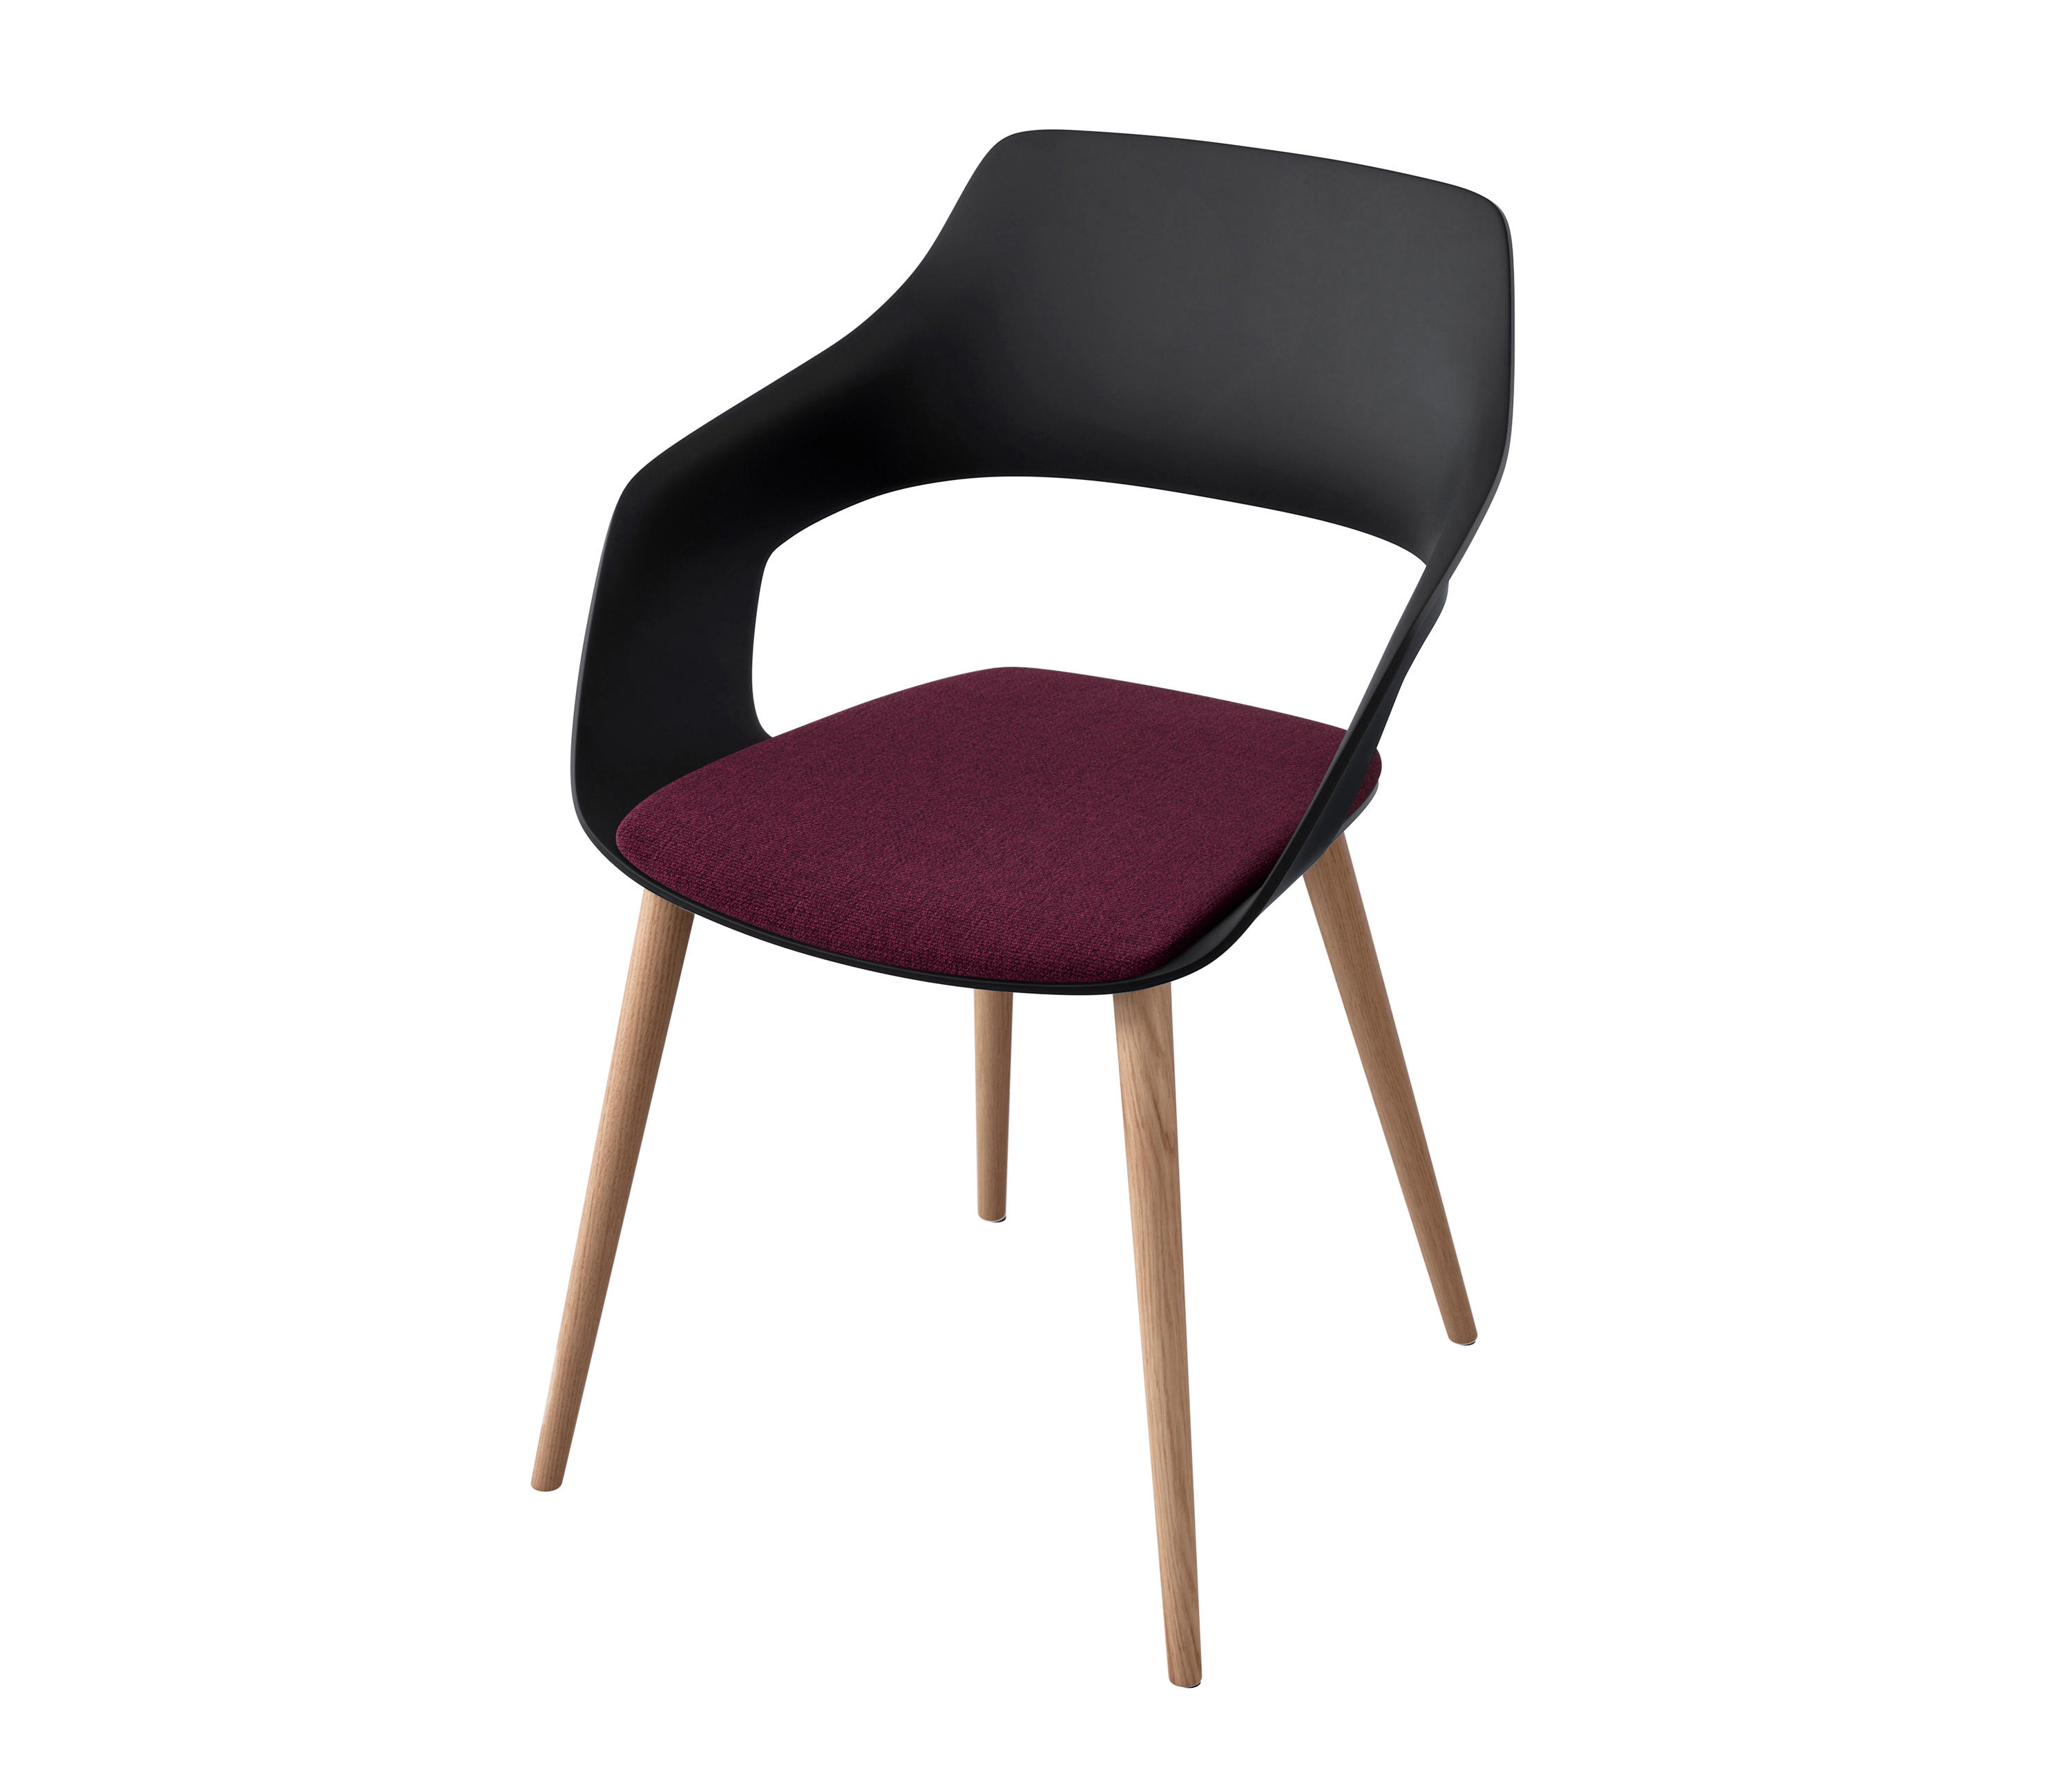 jehs laub lounge chair folding aluminum chairs occo - visitors / side from wilkhahn | architonic